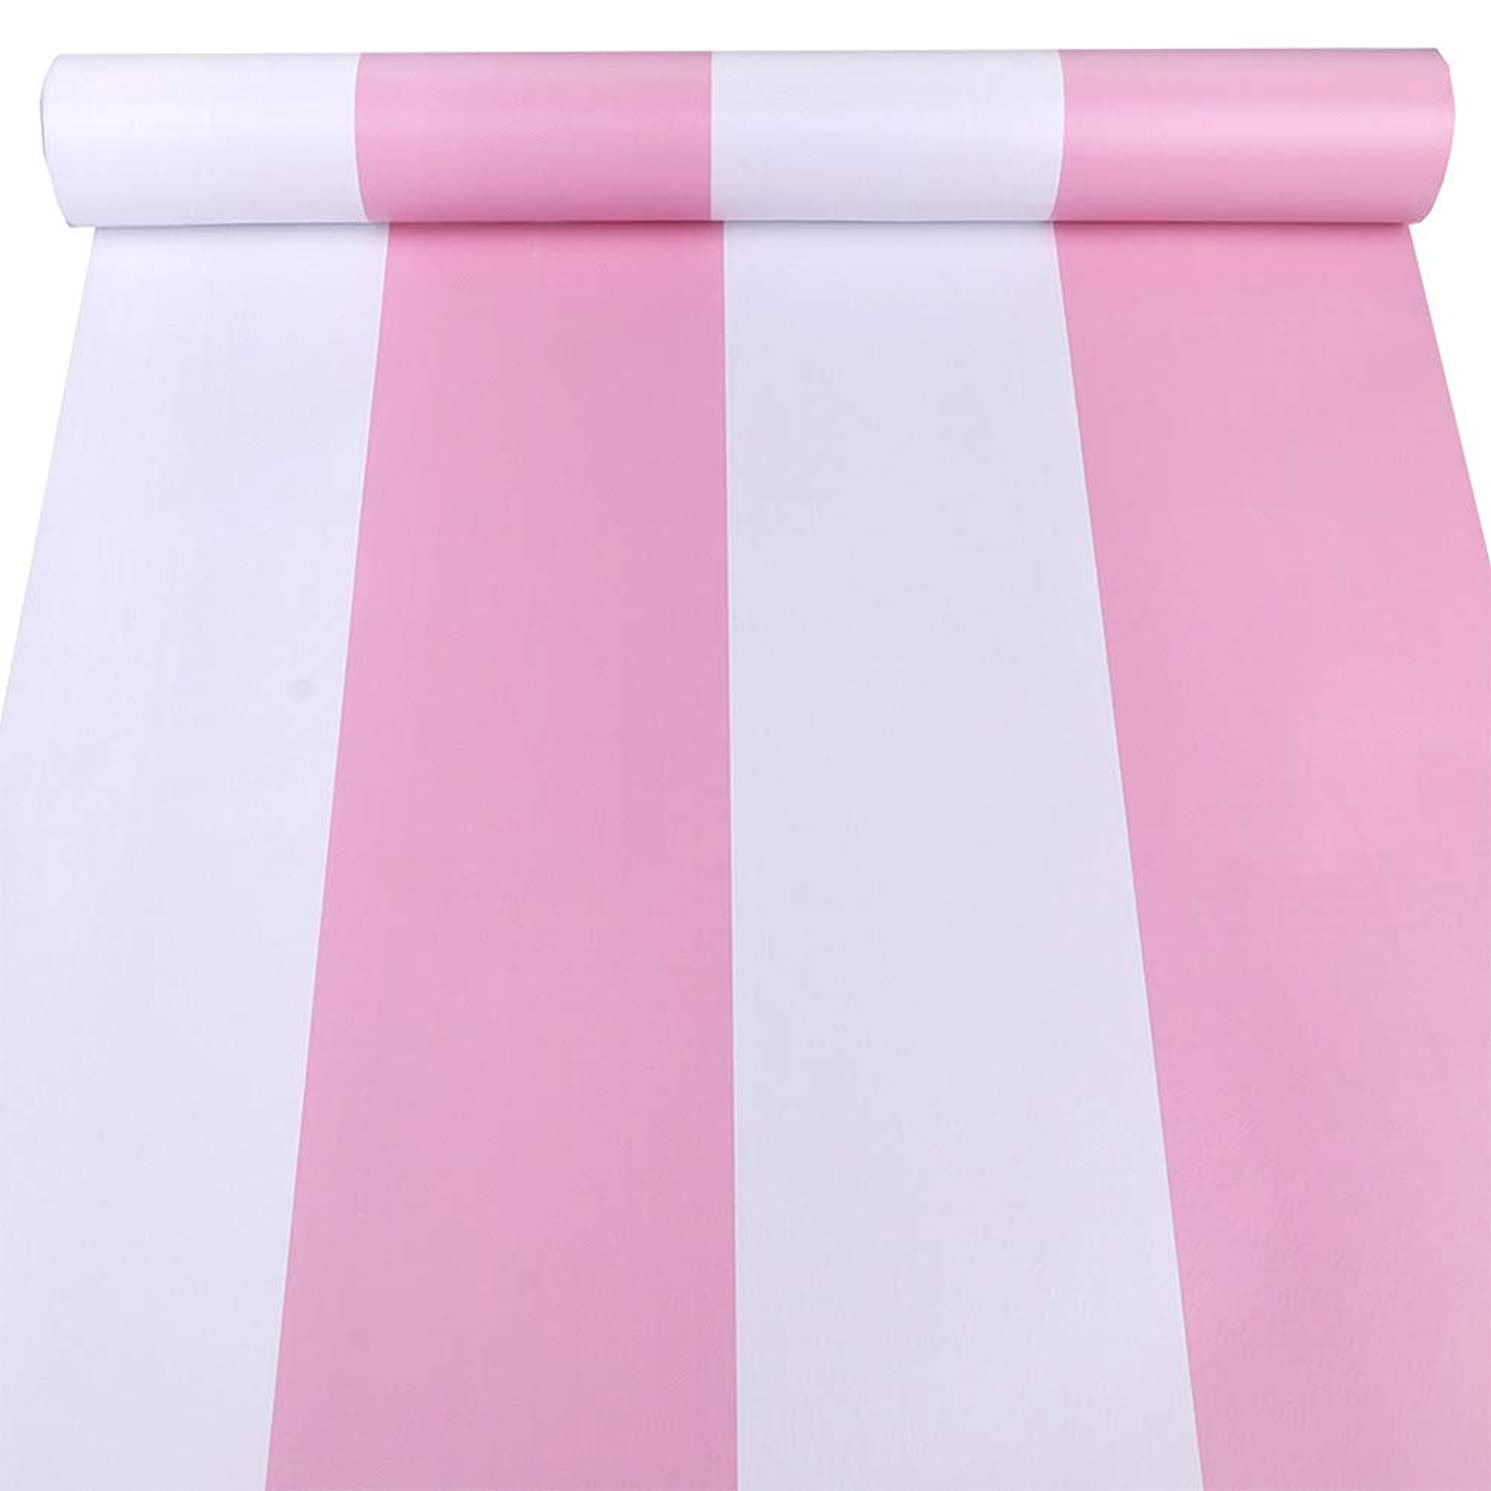 Amao Pink Awning Stripe Peel and Stick Wallpaper for Living Room Bedroom TV Backdrop 17.7'x98'' (Pink)